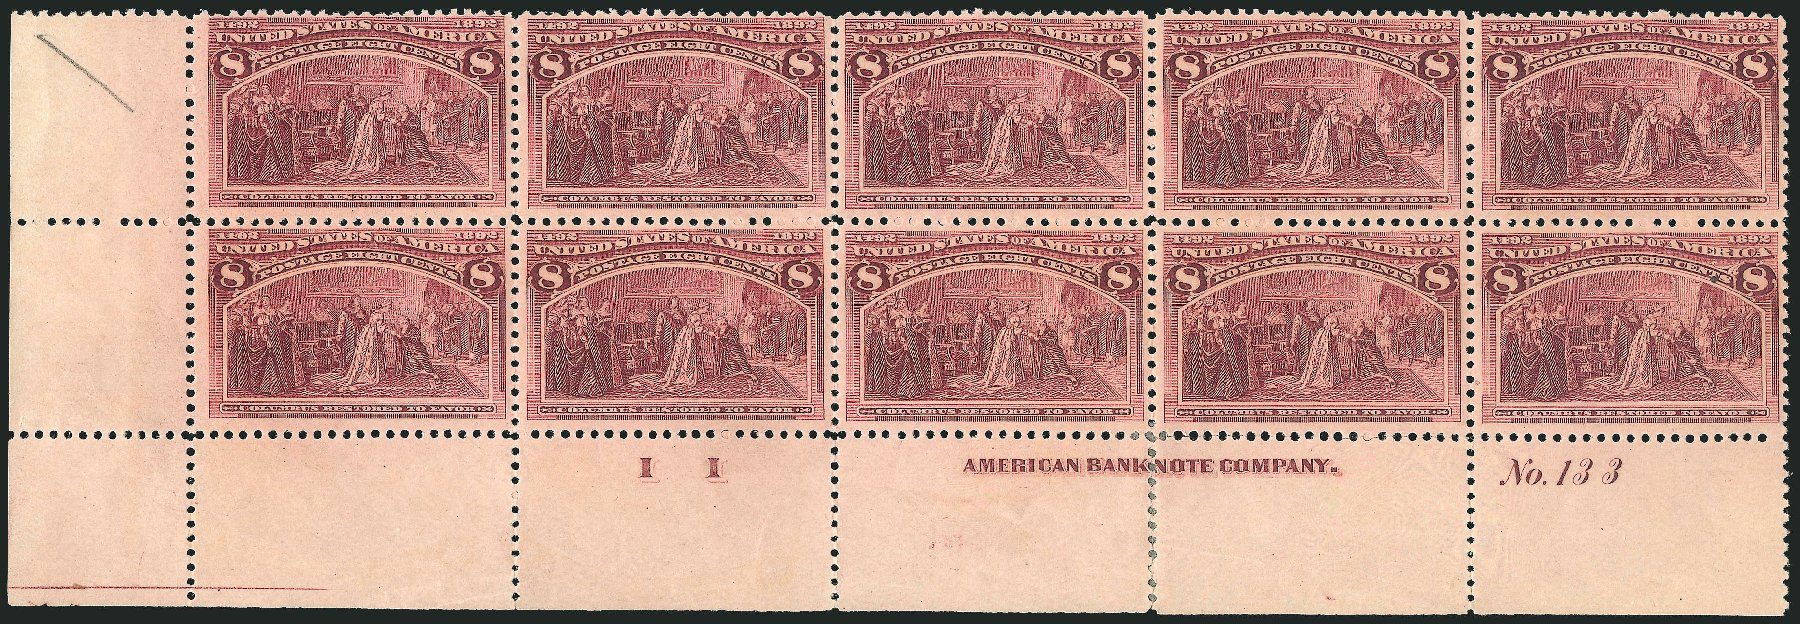 US Stamps Prices Scott 236 - 8c 1893 Columbian Exposition. Robert Siegel Auction Galleries, Jun 2015, Sale 1100, Lot 47